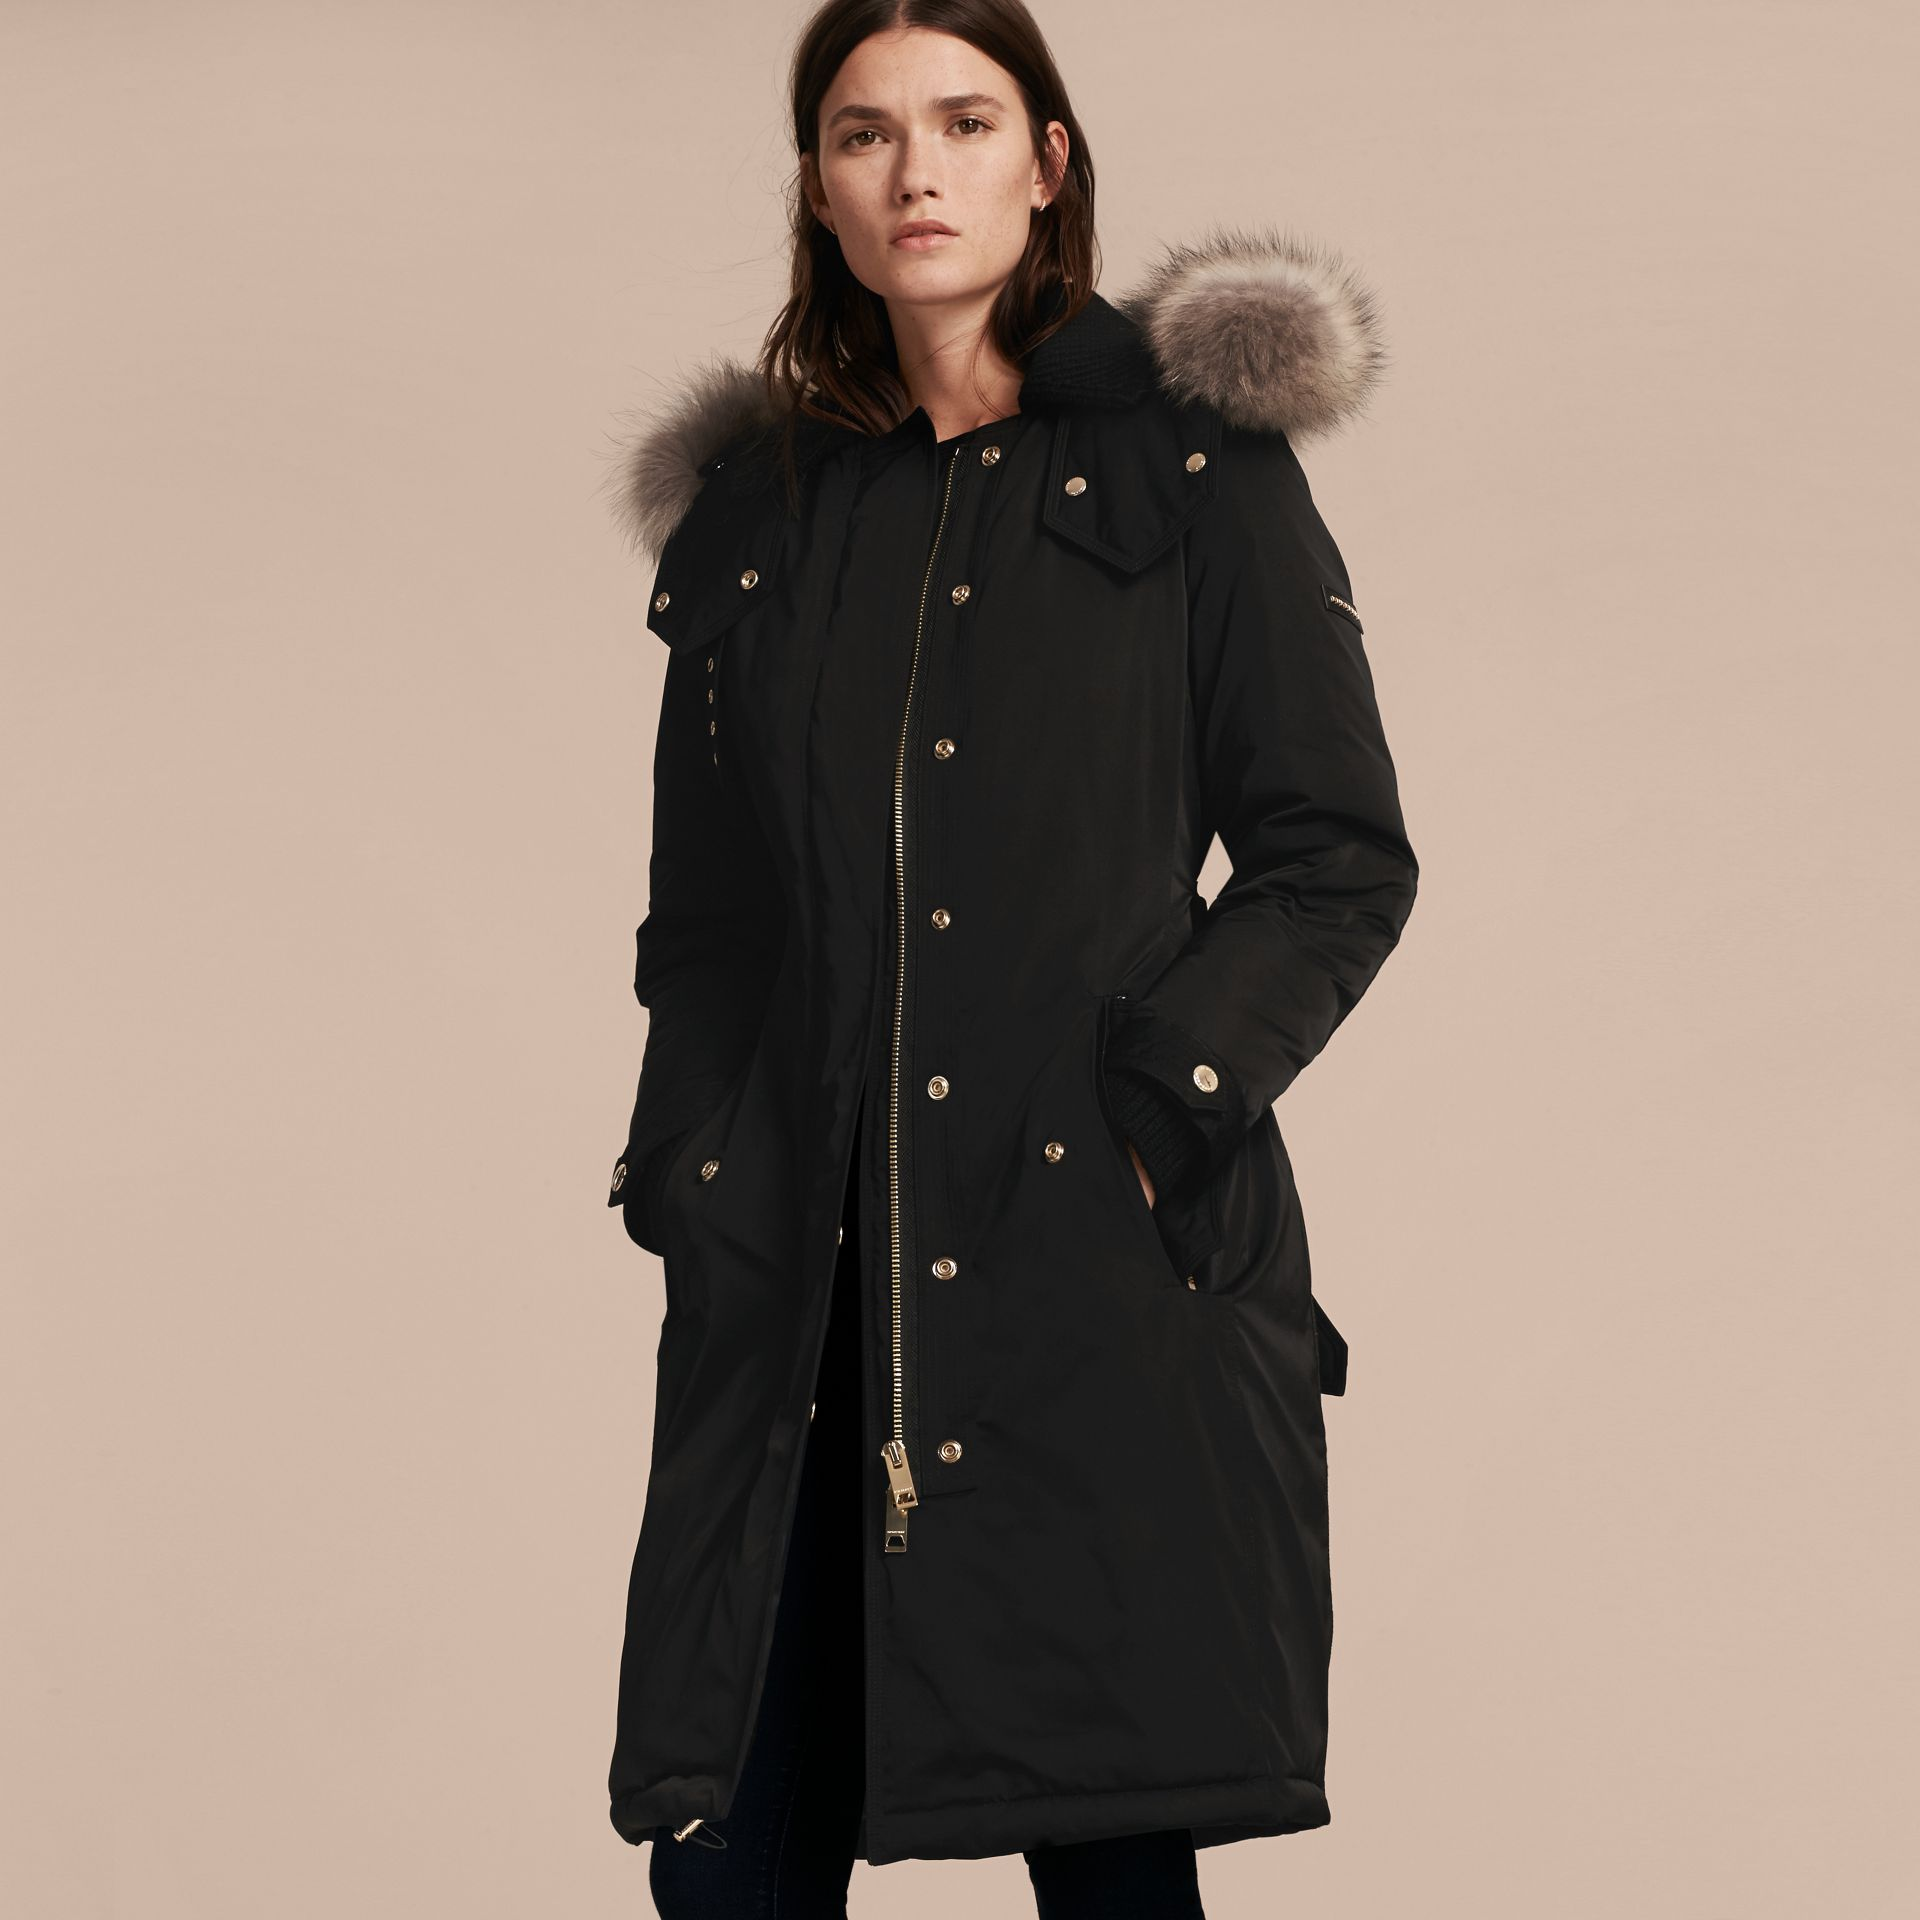 Black Down-filled Parka Coat with Detachable Fur Trim Black - gallery image 7